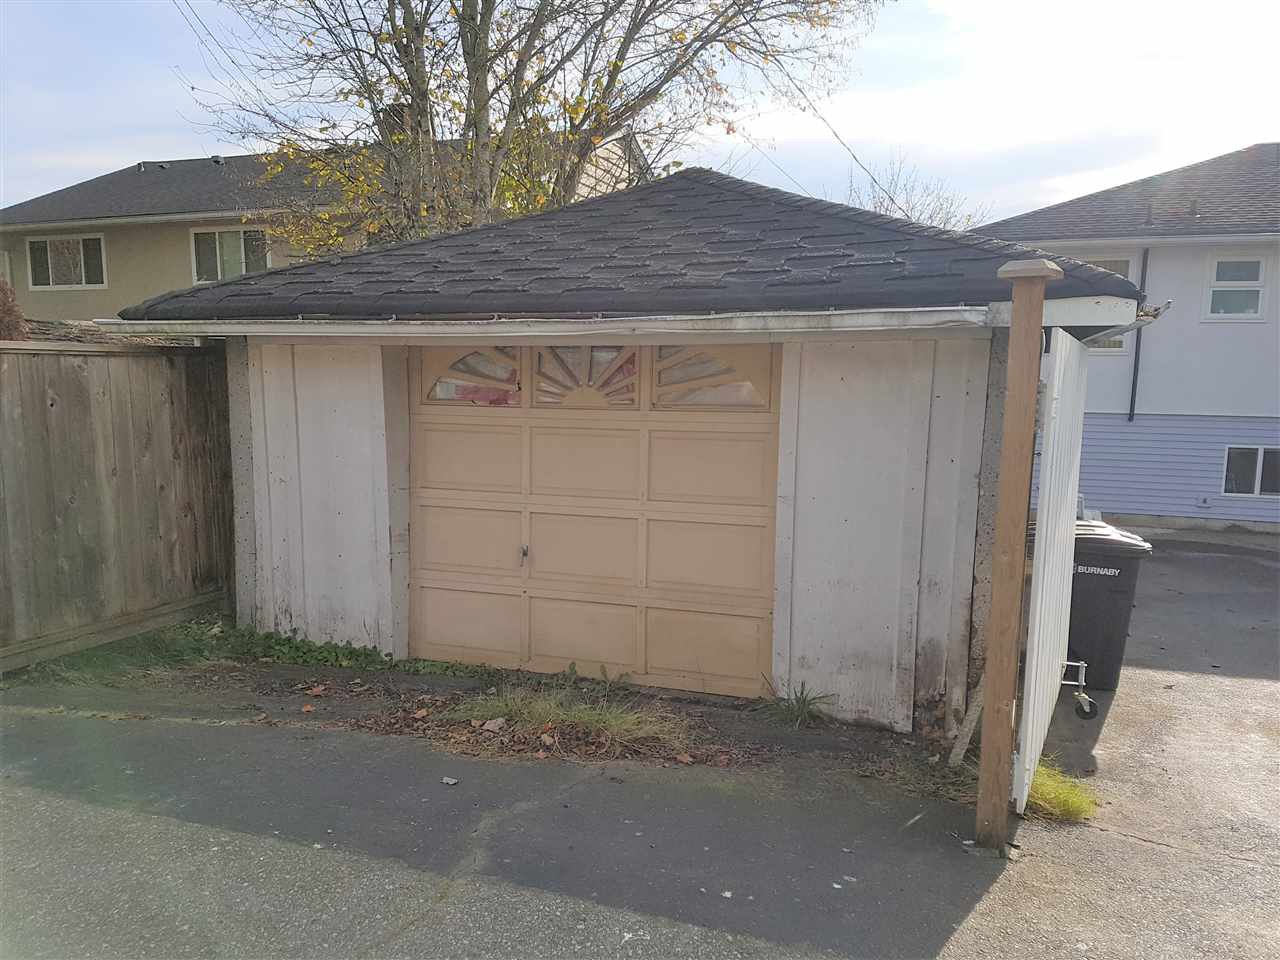 Photo 20: Photos: 3837 HURST Street in Burnaby: Suncrest House for sale (Burnaby South)  : MLS®# R2419284